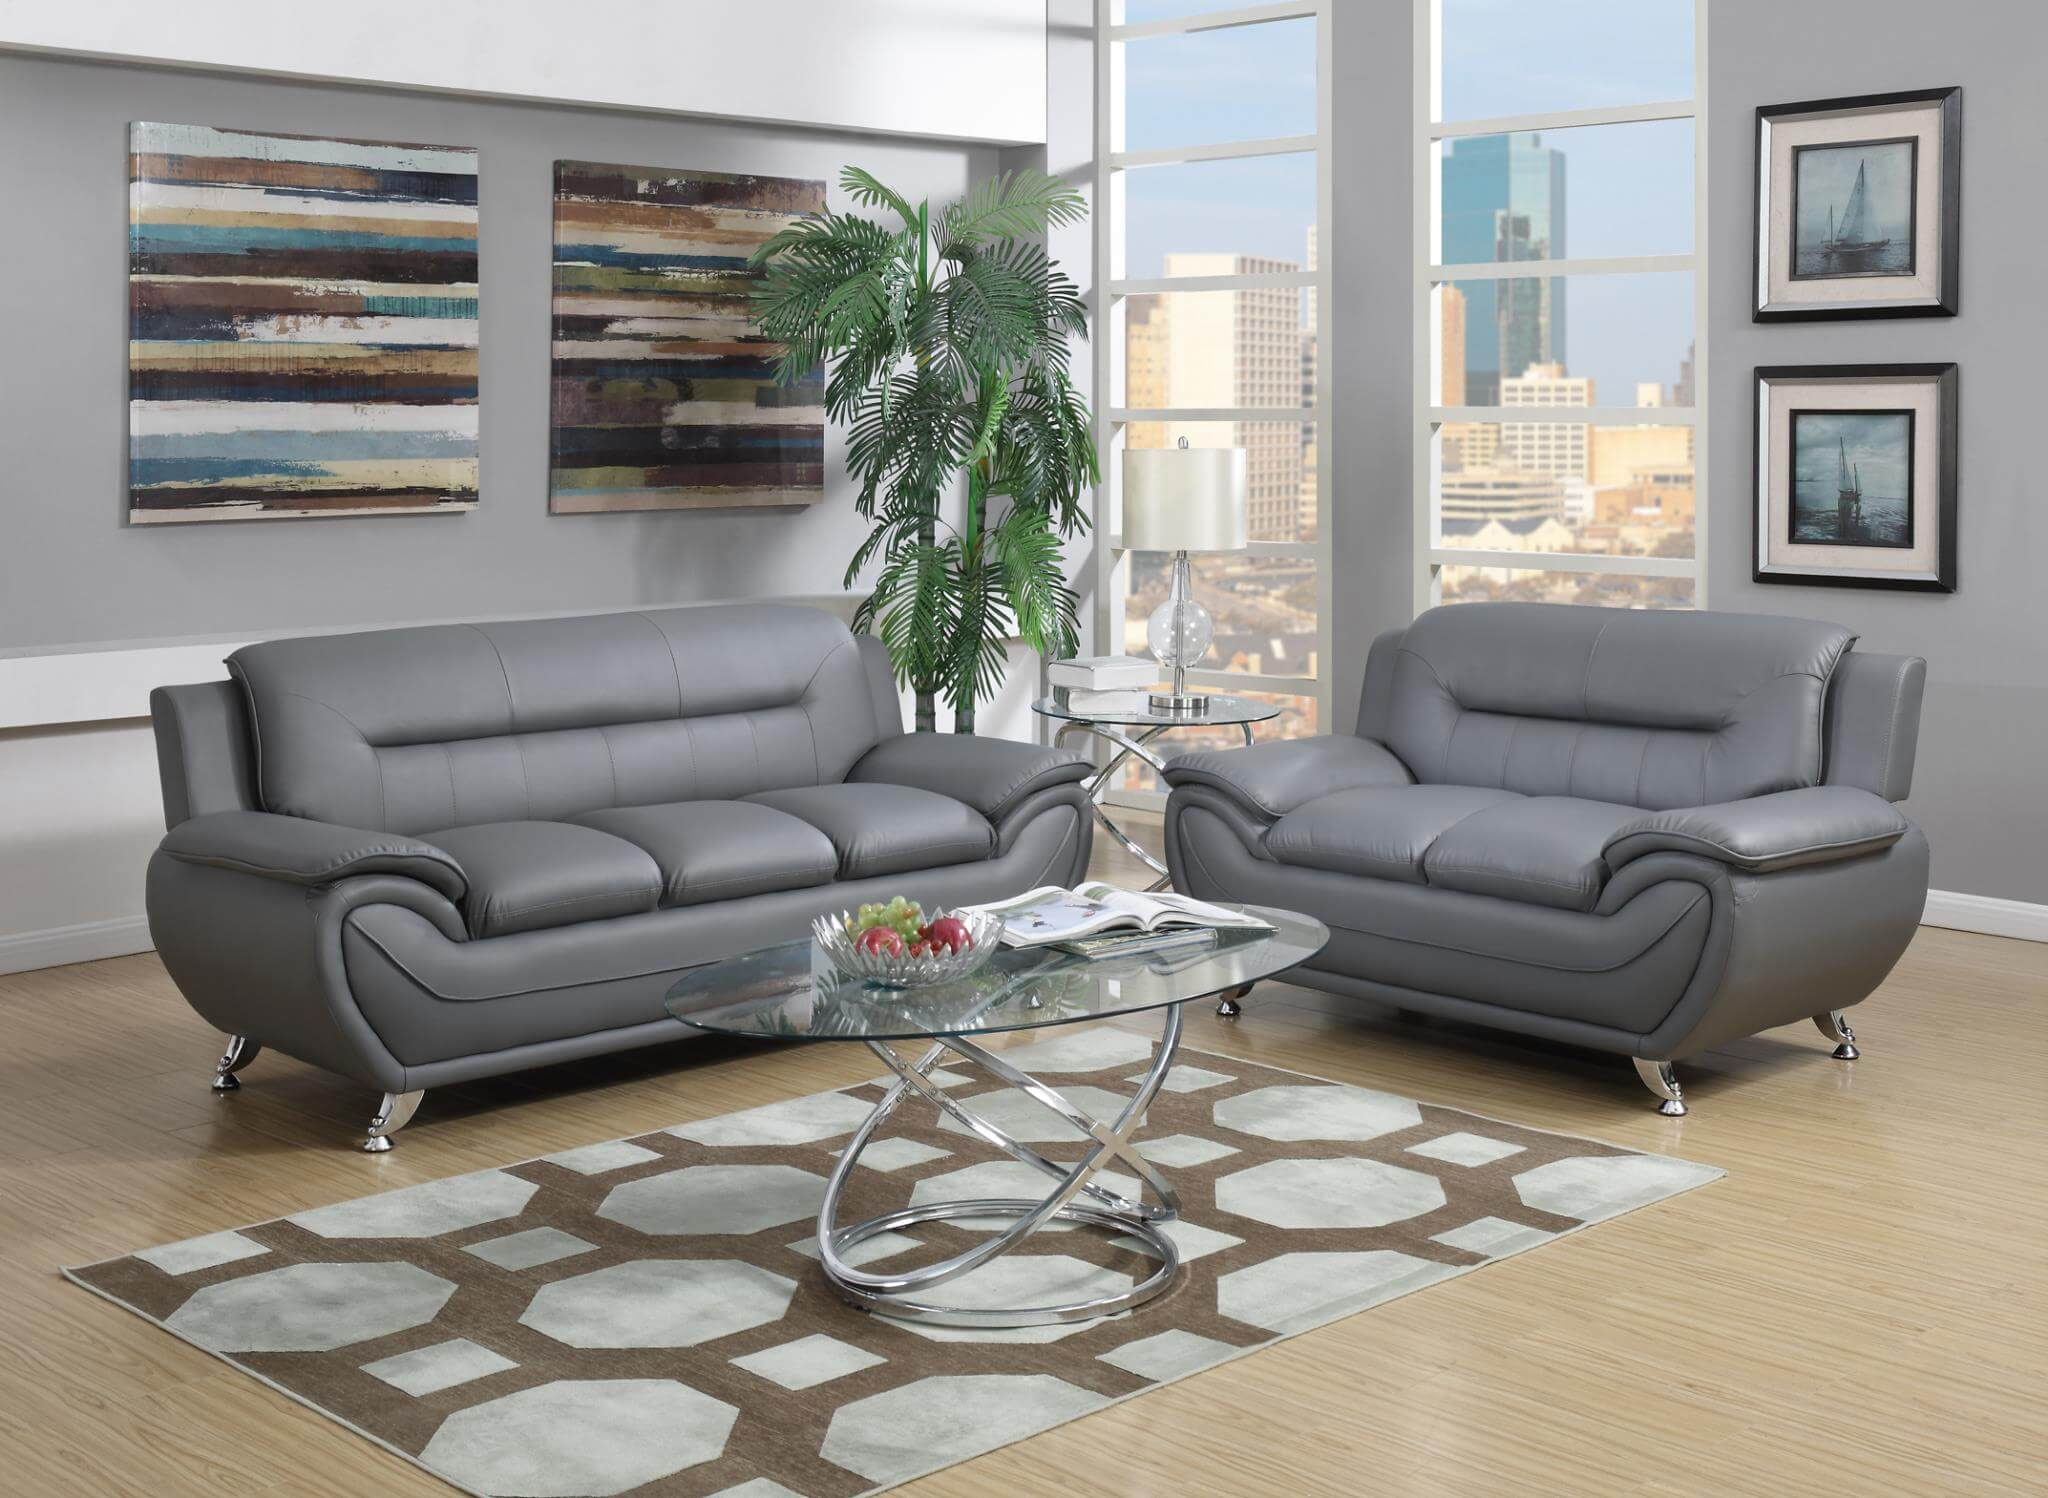 Contemporary Living Room Furniture Sets, Contemporary Living Room Sets